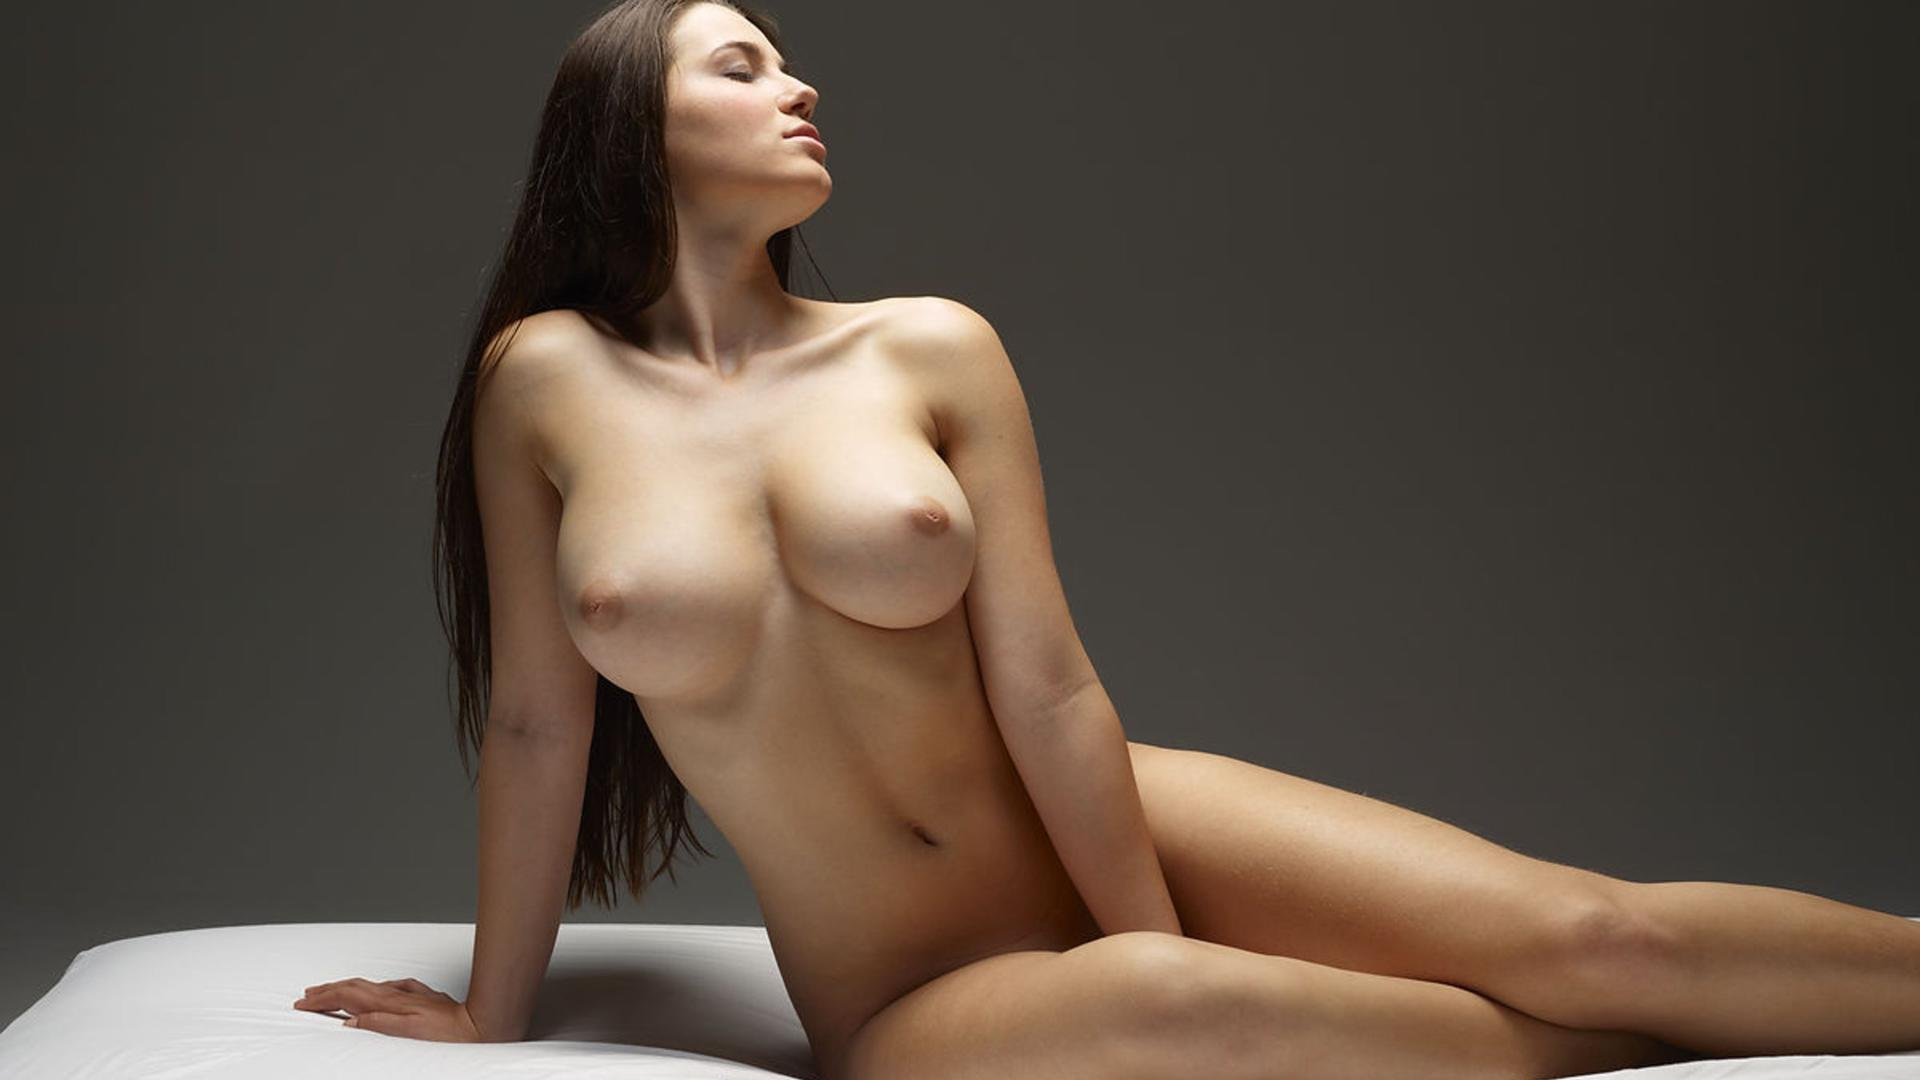 Download photo 1920x1080, yara, brunette, beauty, nude ...